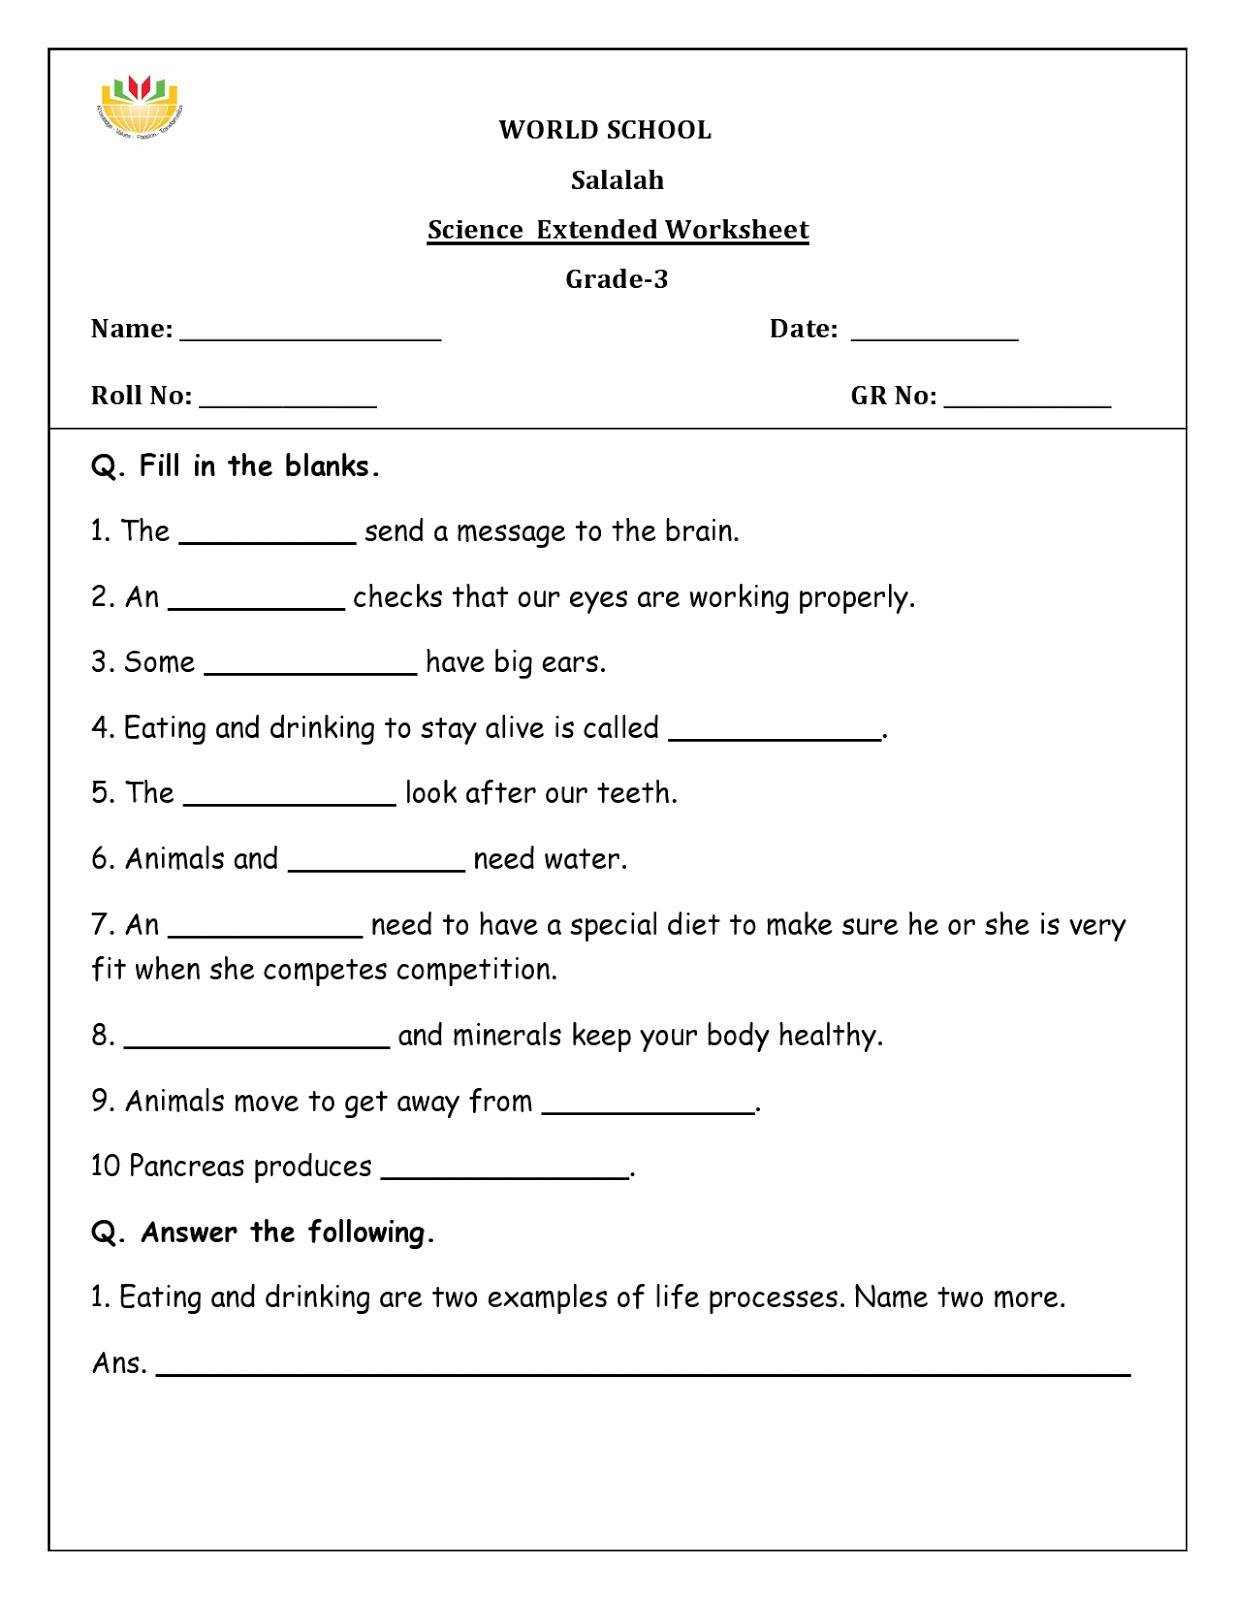 Second Grade Science Worksheets Free Science Worksheets for Grade 2 to Educations Science